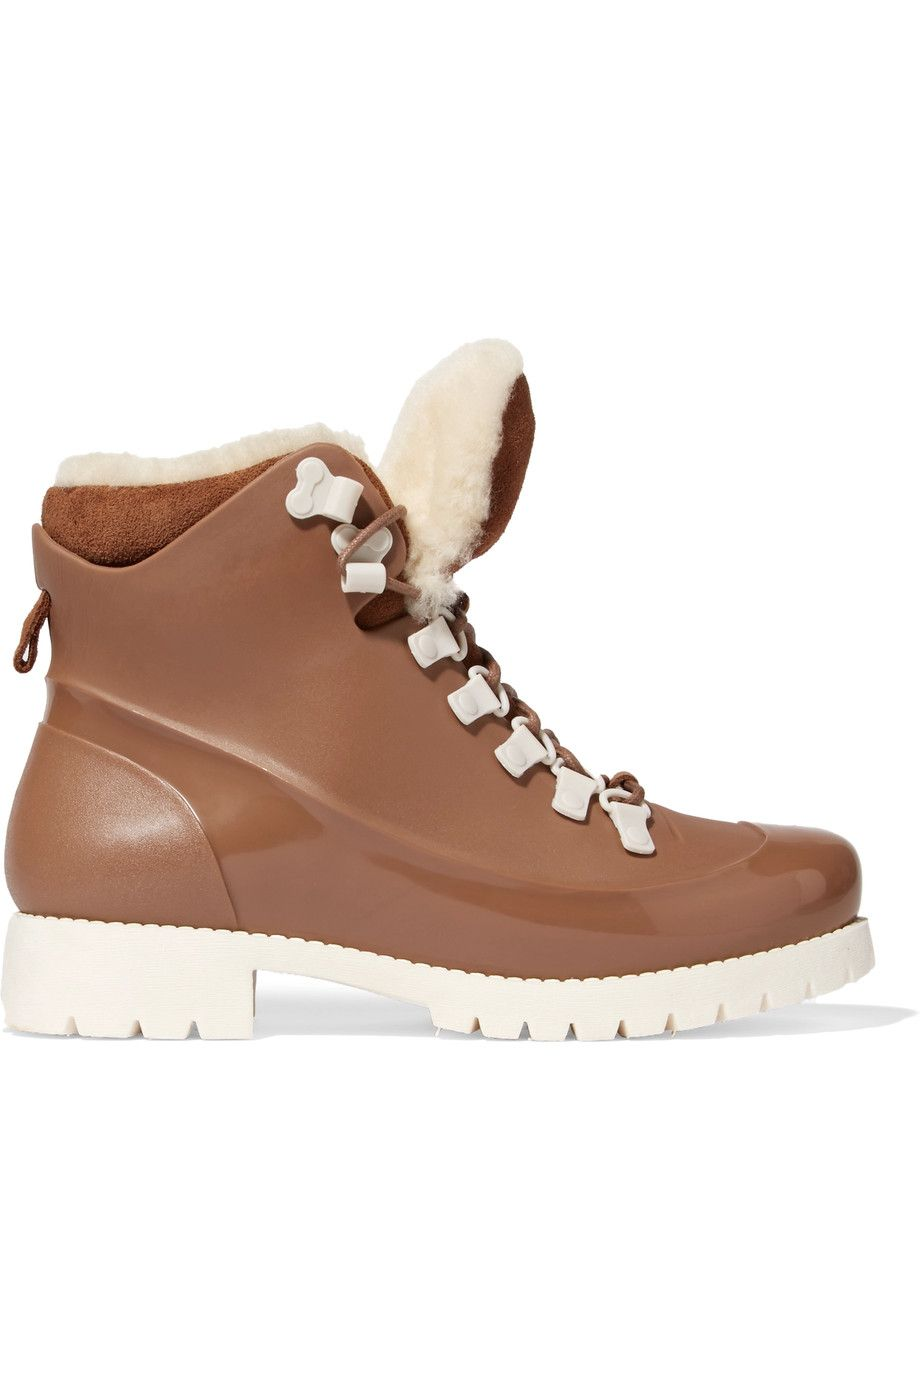 77b22814ba5b AUSTRALIA LUXE COLLECTIVE Rubstep shearling and rubber boots.   australialuxecollective  shoes